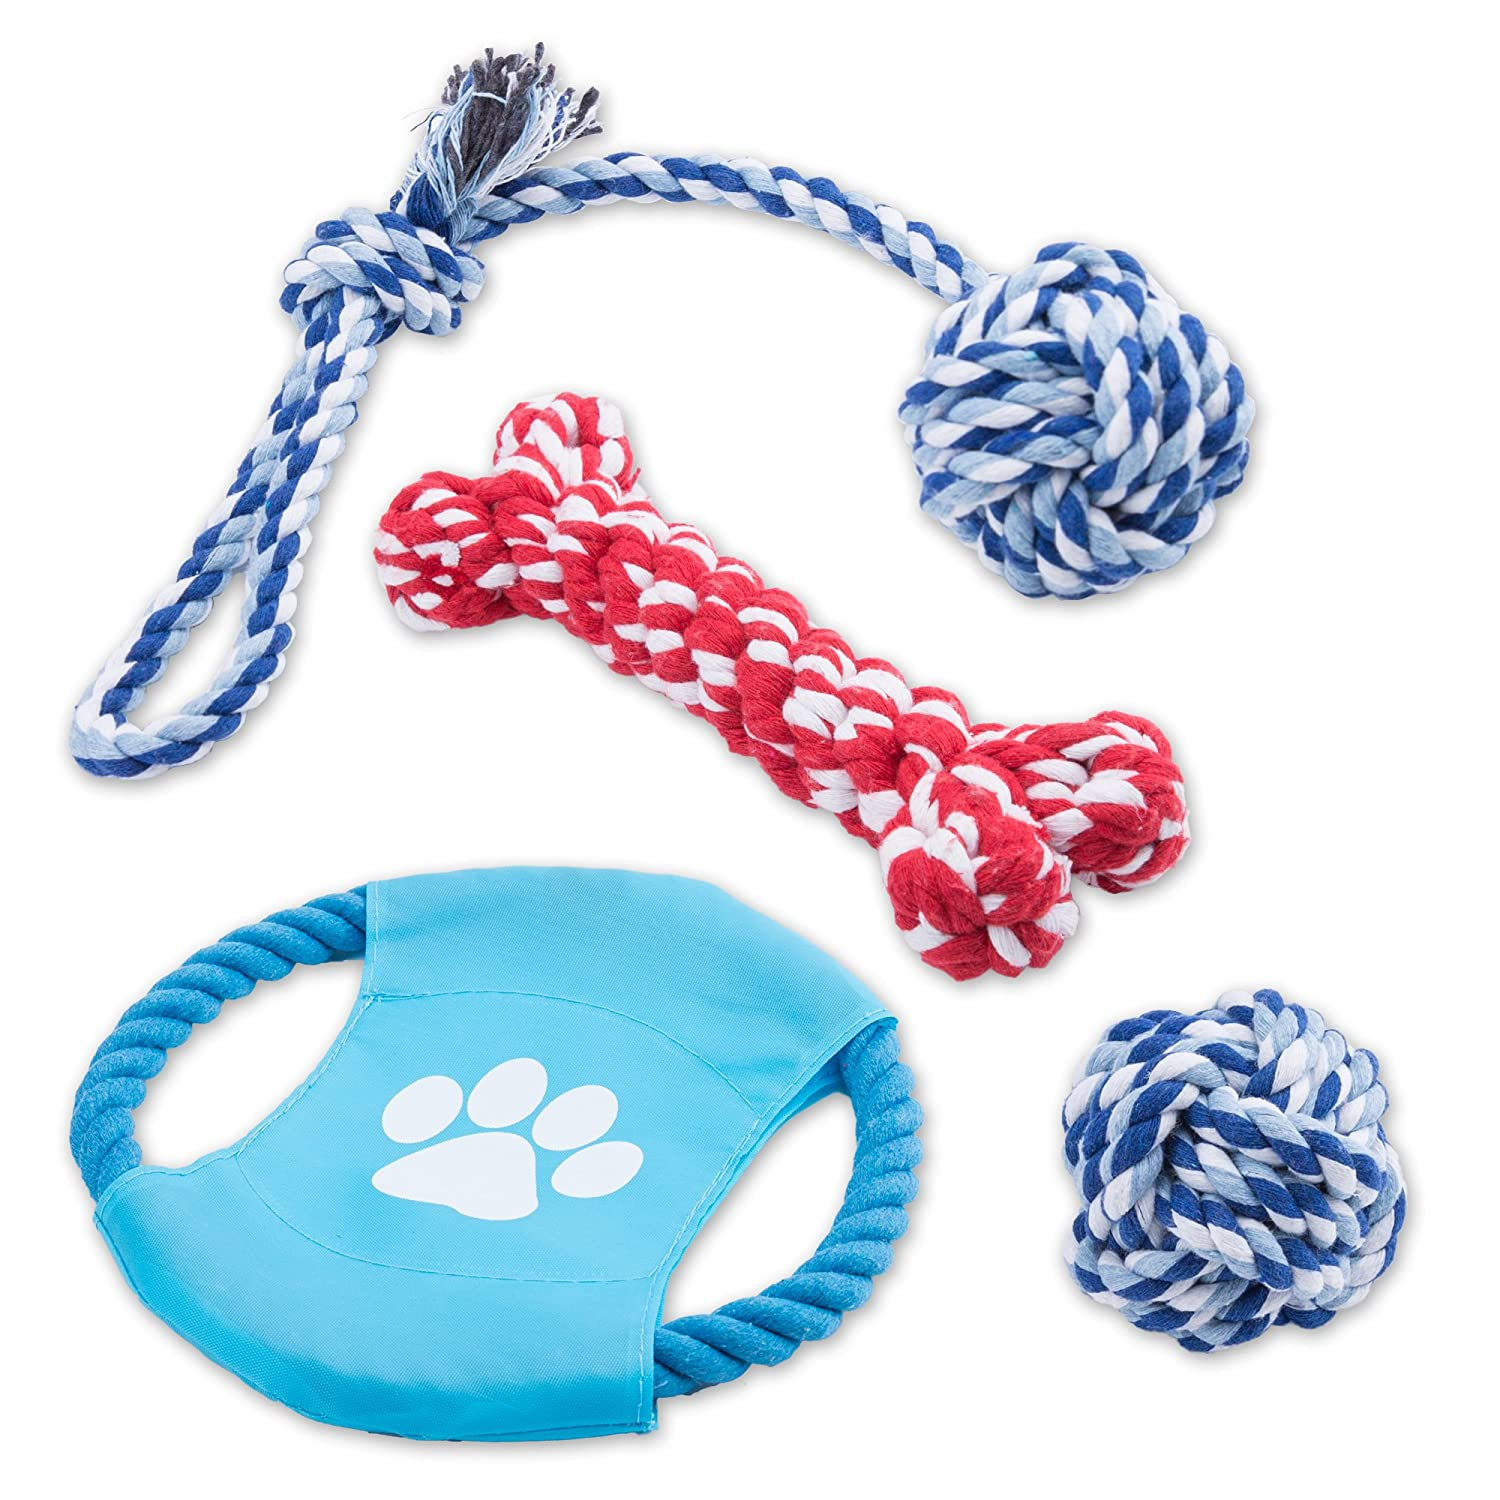 85%OFF Intcrown Dog Rope Toys Puppy Chew Toys for Small and Medium